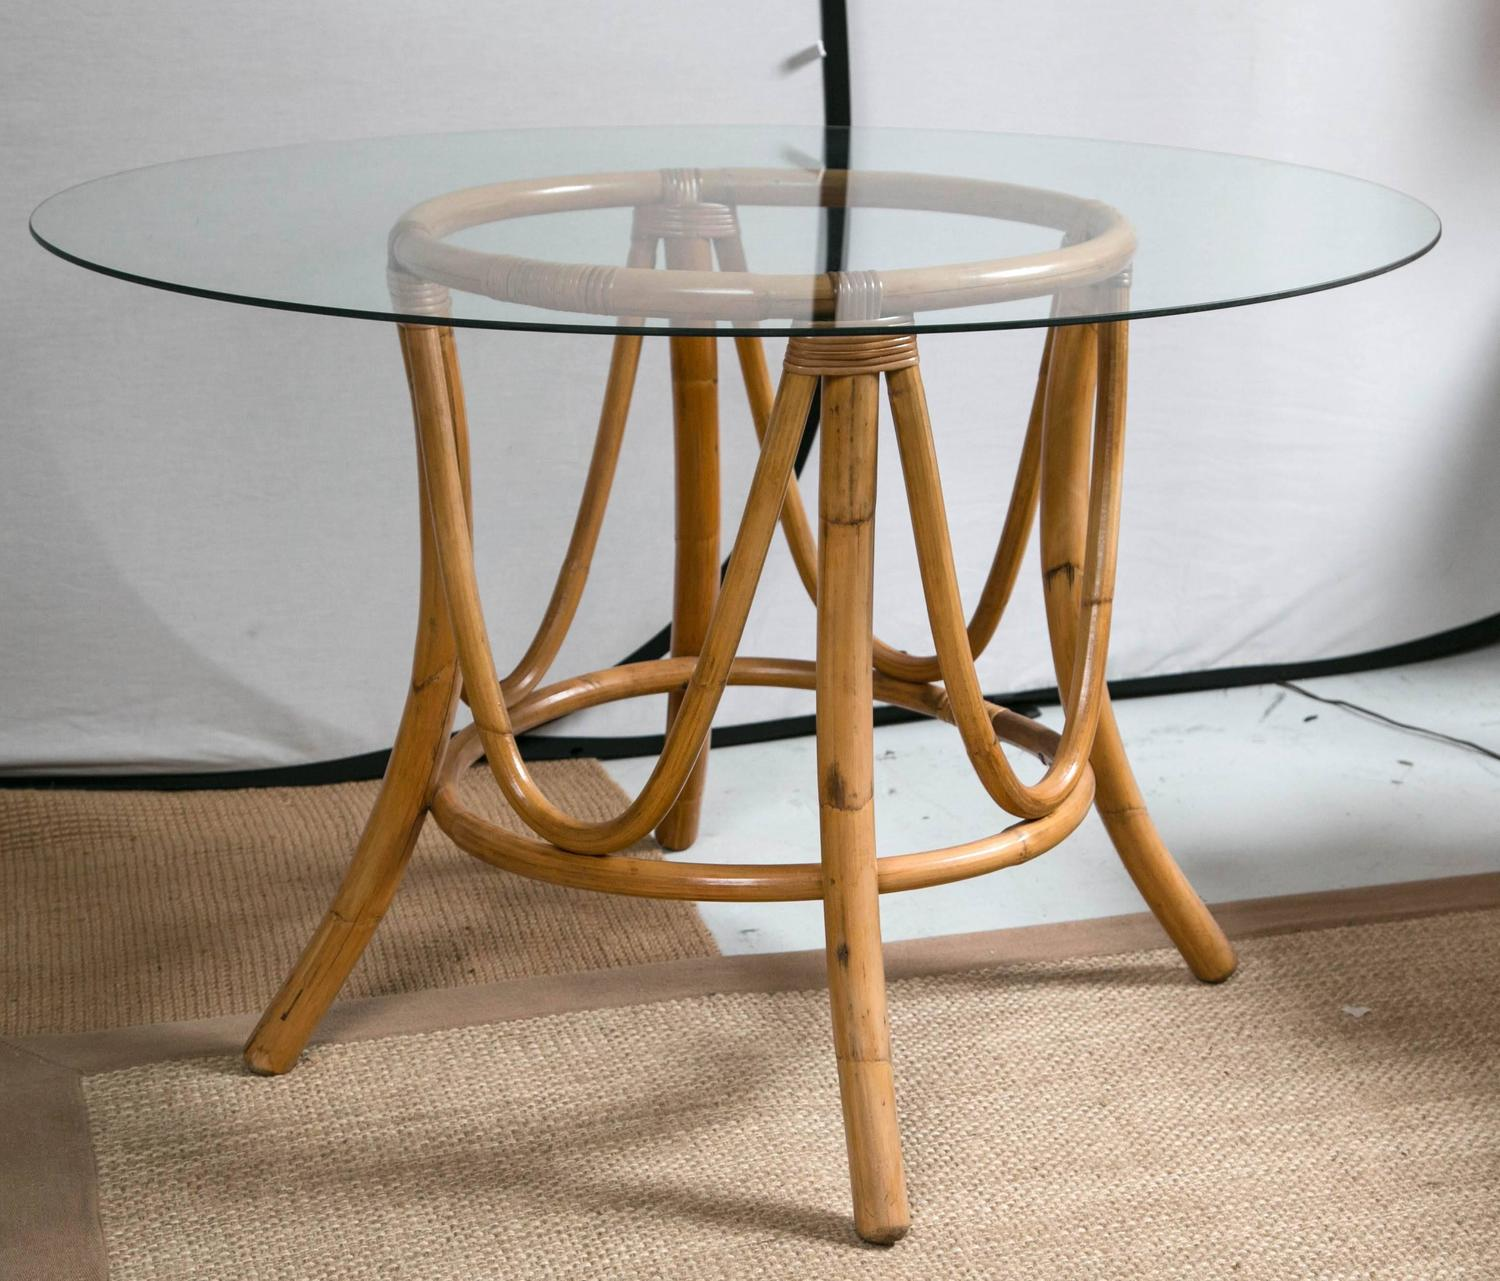 round bamboo chair used dental vintage rattan dining table and chairs at